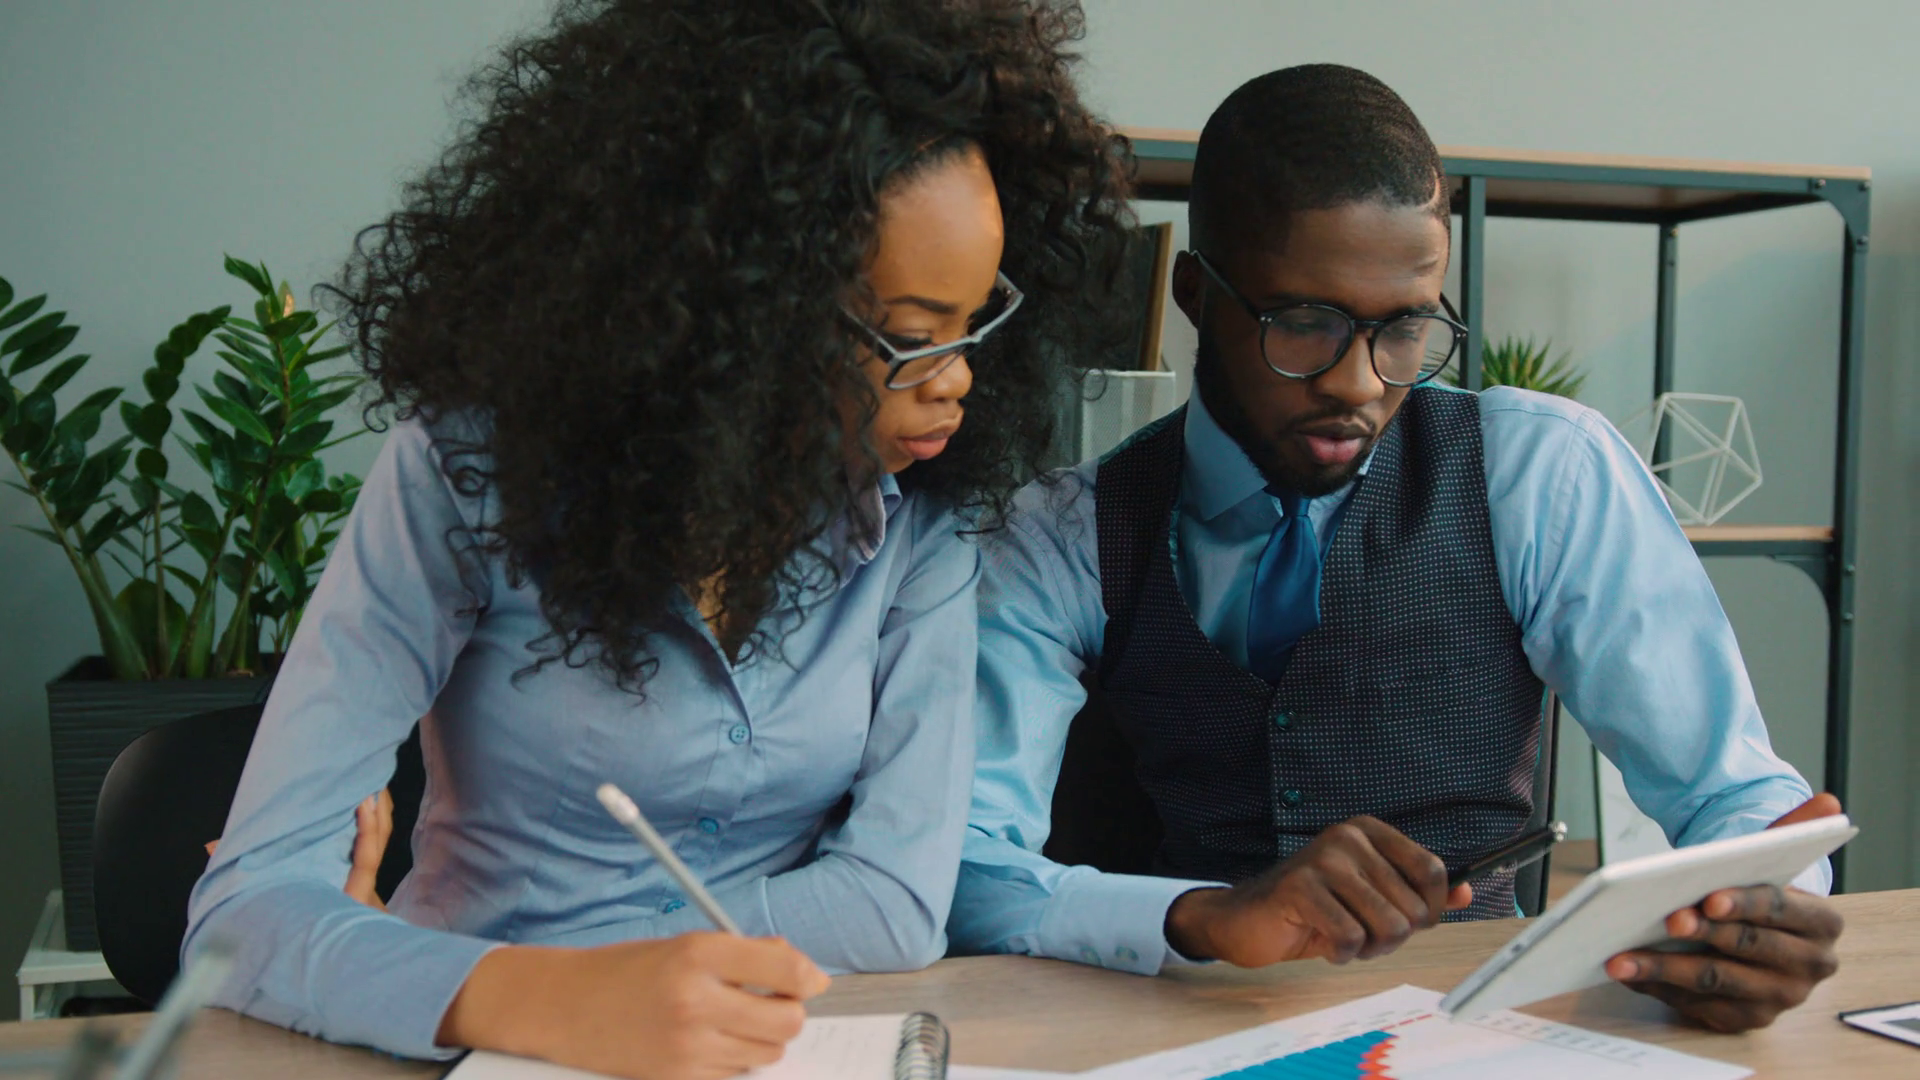 videoblocks-team-of-two-african-american-business-people-working-together-in-the-office-african-american-businessman-and-businesswoman-talking-using-tablet-computer-checking-financial-charts_rh-g8g3eb_thumbnail-full01.png